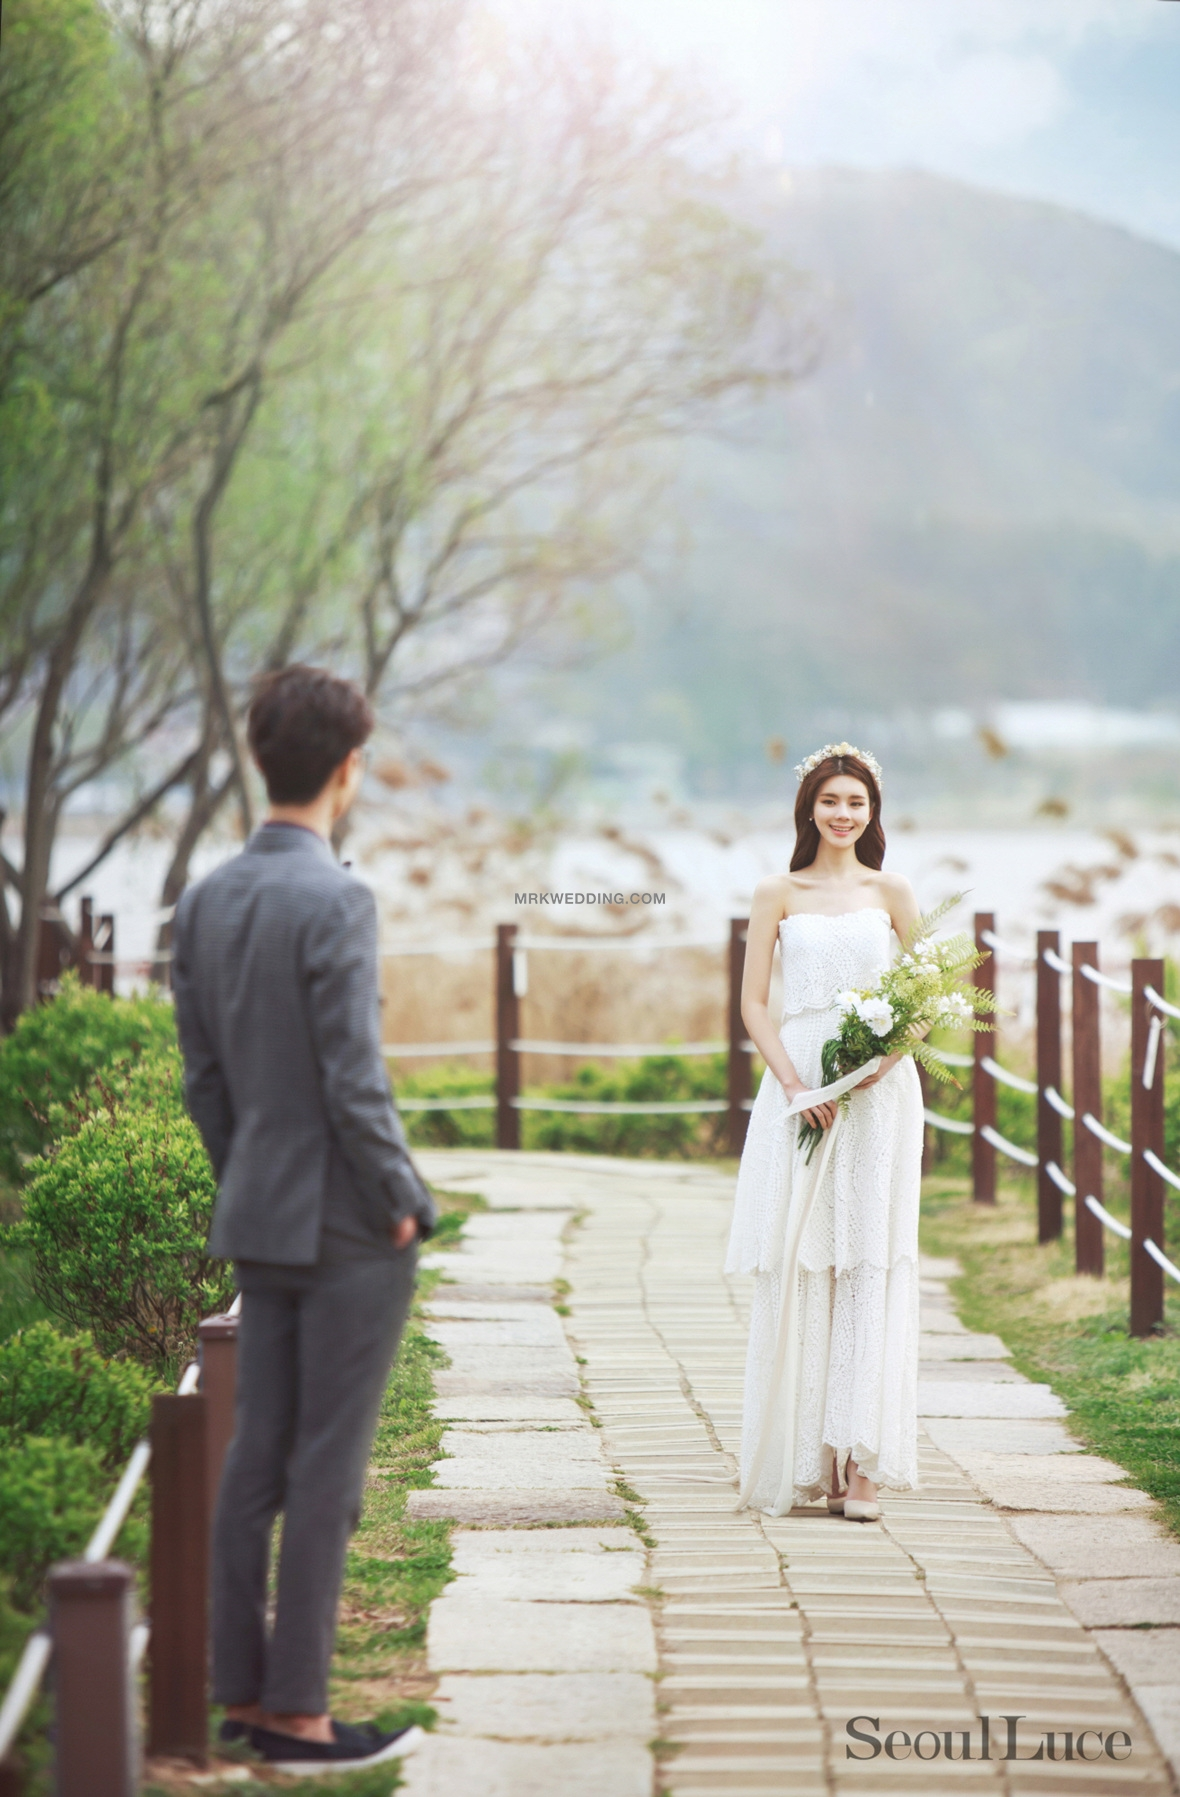 Korea pre wedding photography (133).jpg